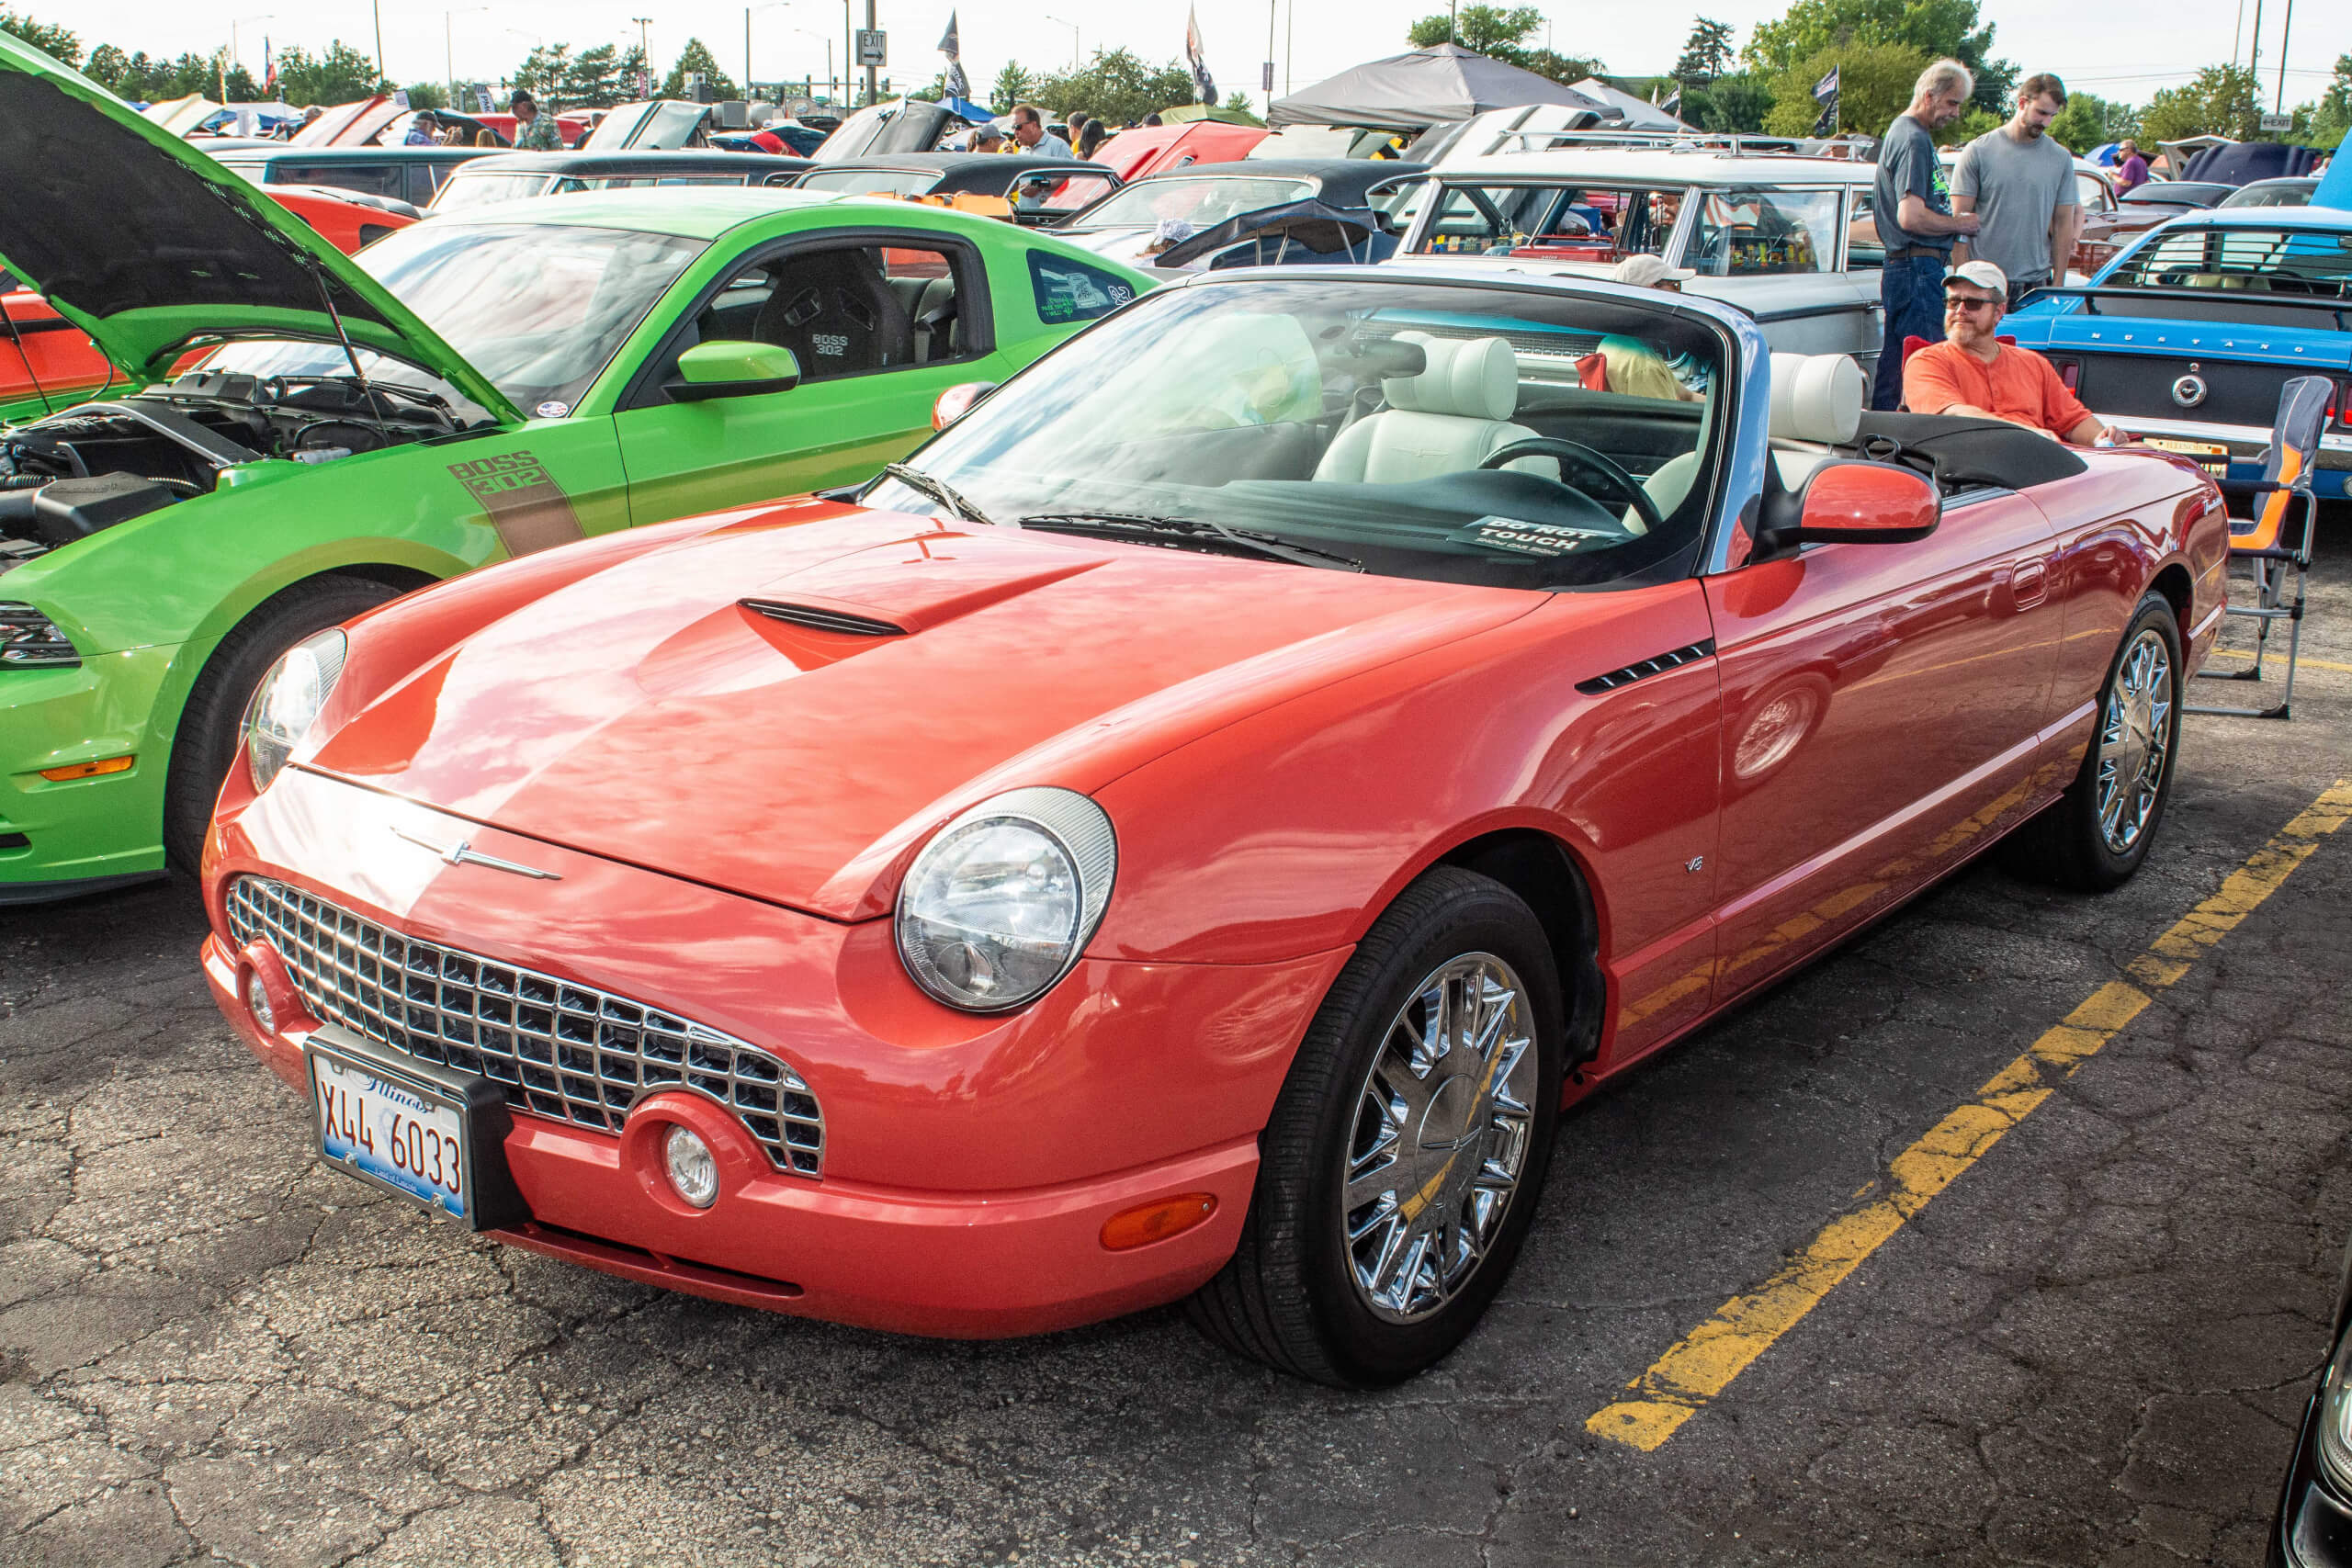 In 2002, Ford offered a limited edition '007 Thunderbird' painted Coral. This is car 577 out of 700.